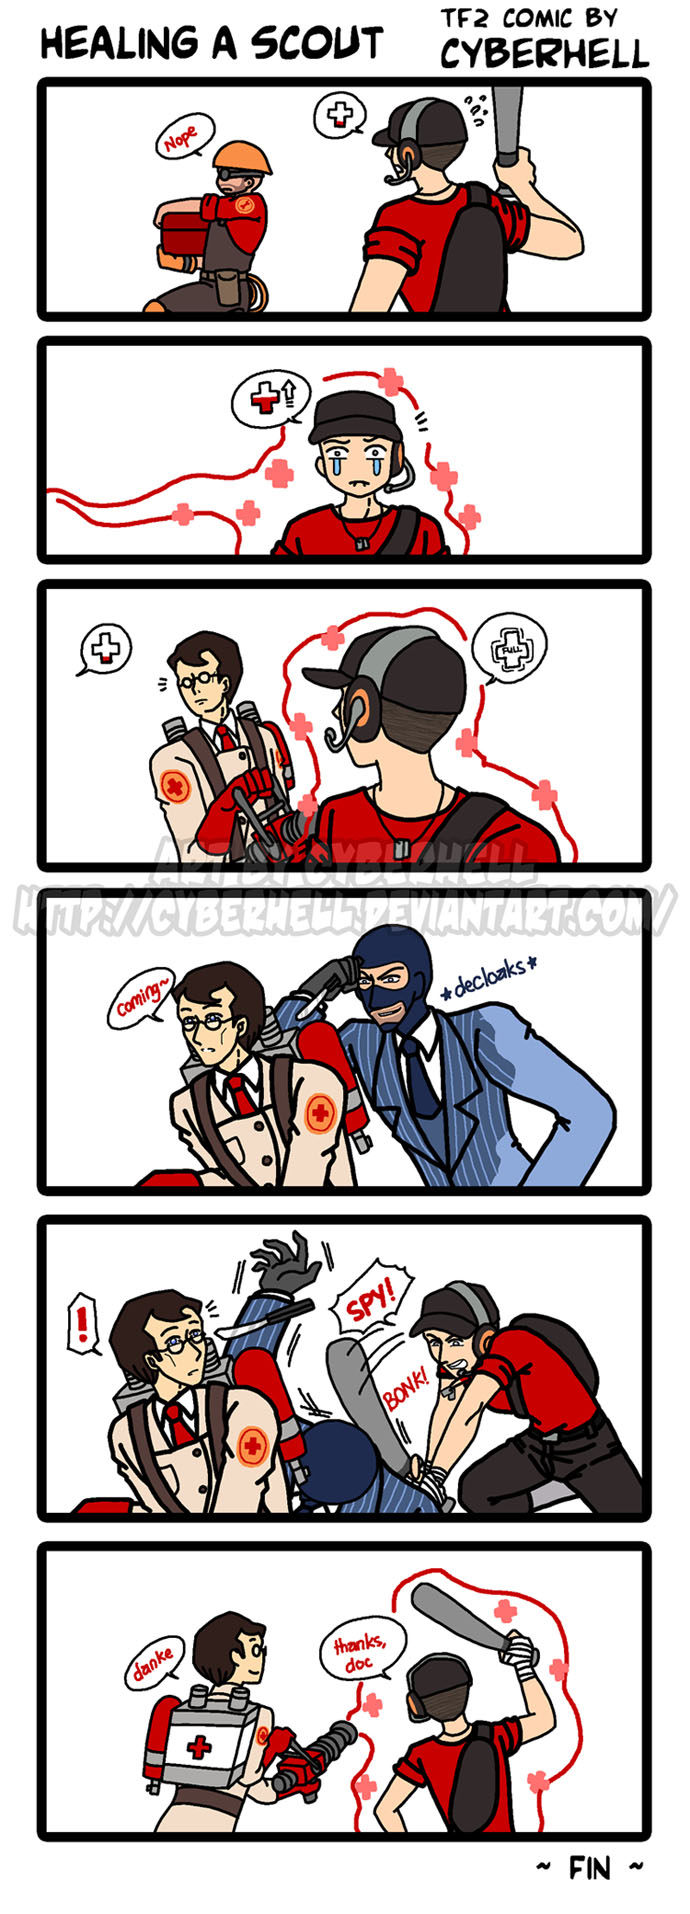 Healing a Scout by cyberhell